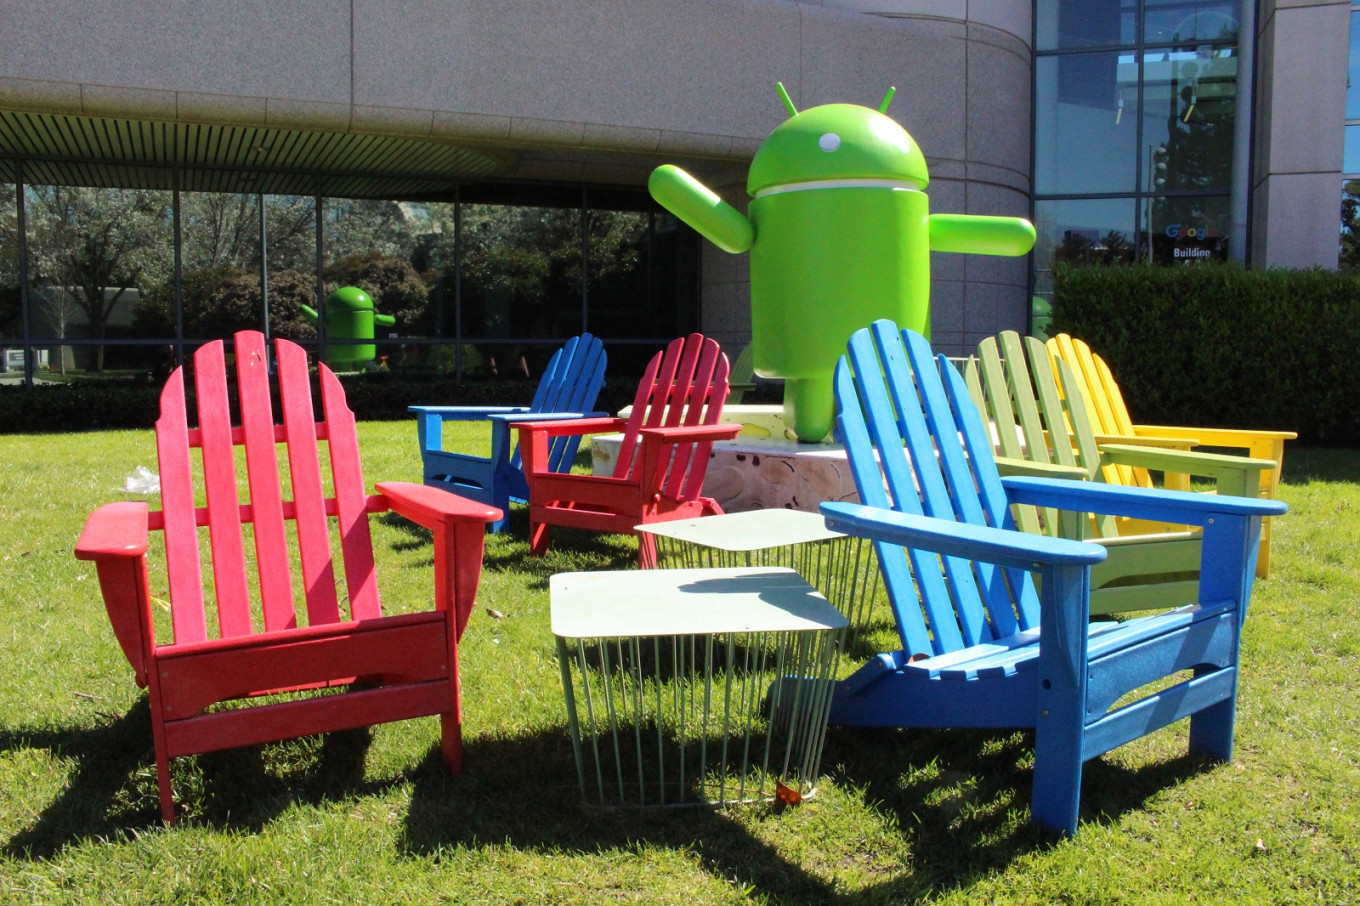 Google, Facebook extend work-from-home plans